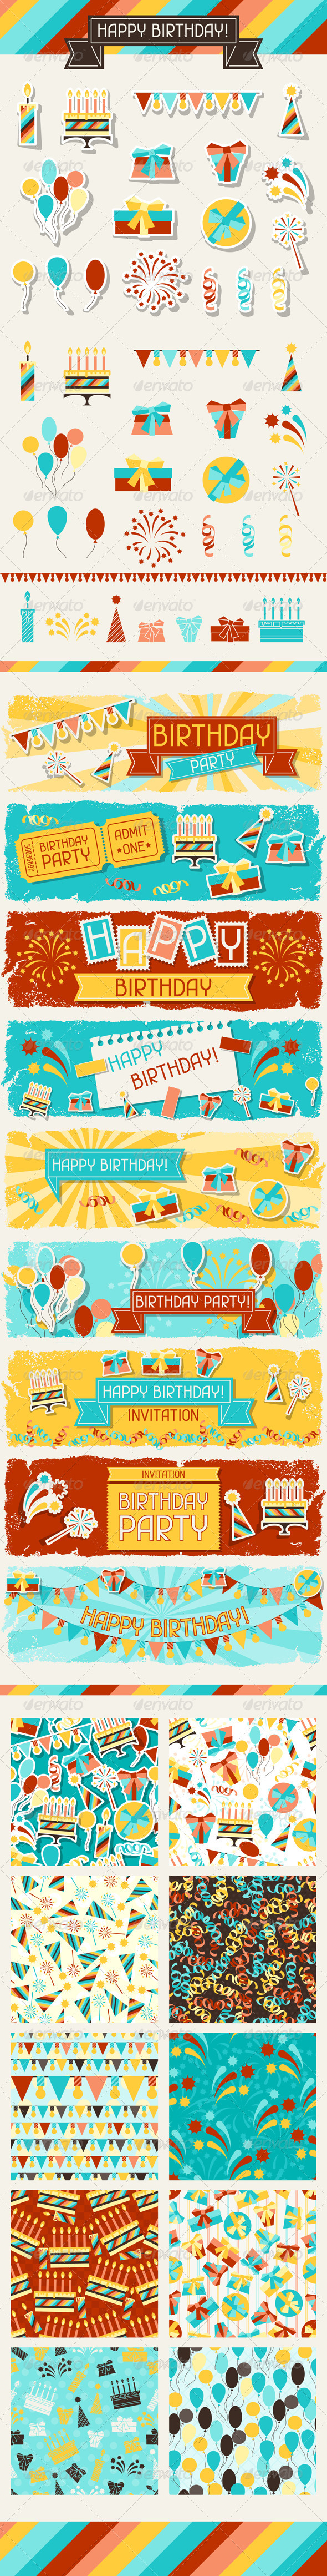 Happy Birthday Icons, Banners and Patterns